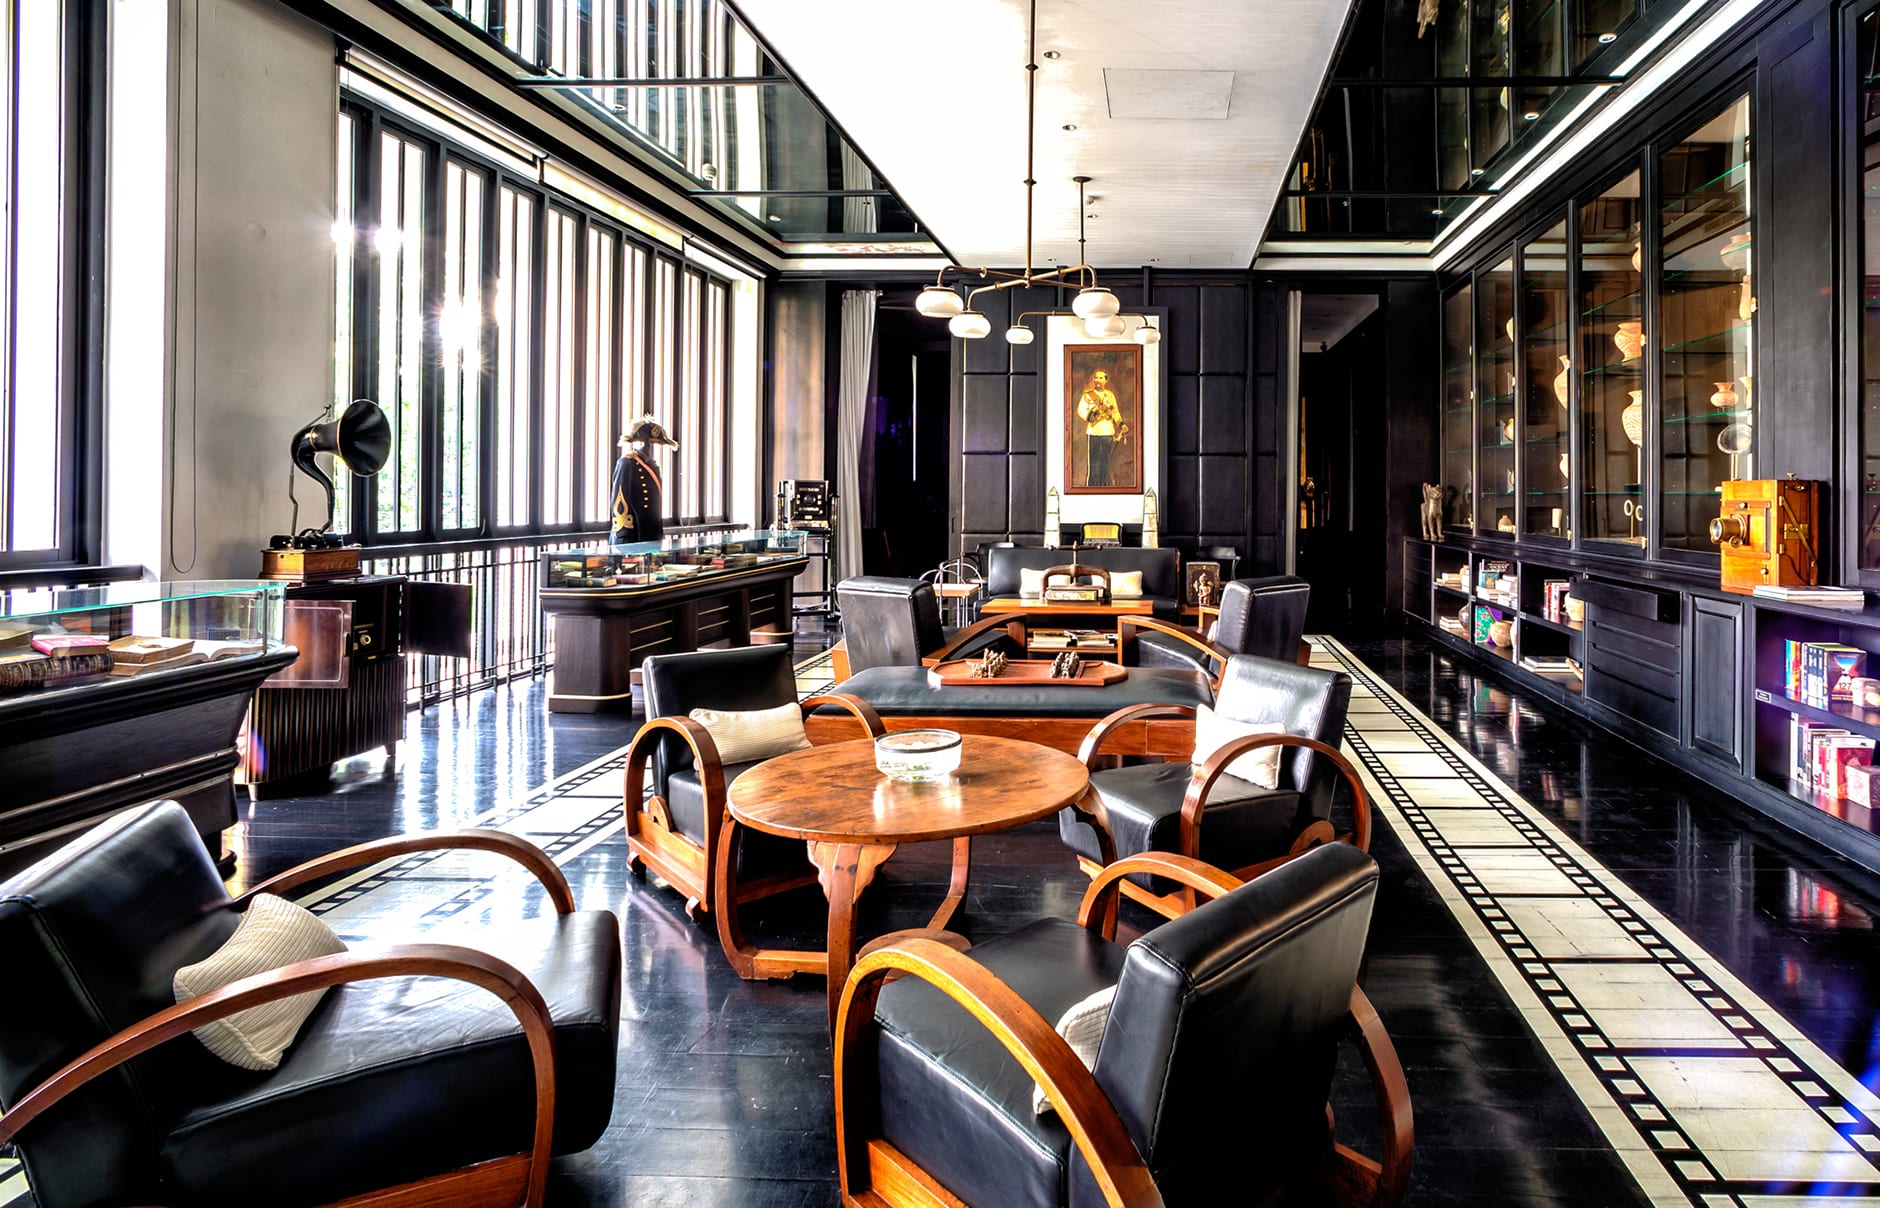 The Siam Hotel, Bangkok, Thailand. Hotel Review by TravelPlusStyle. Photo © The Siam Hotel